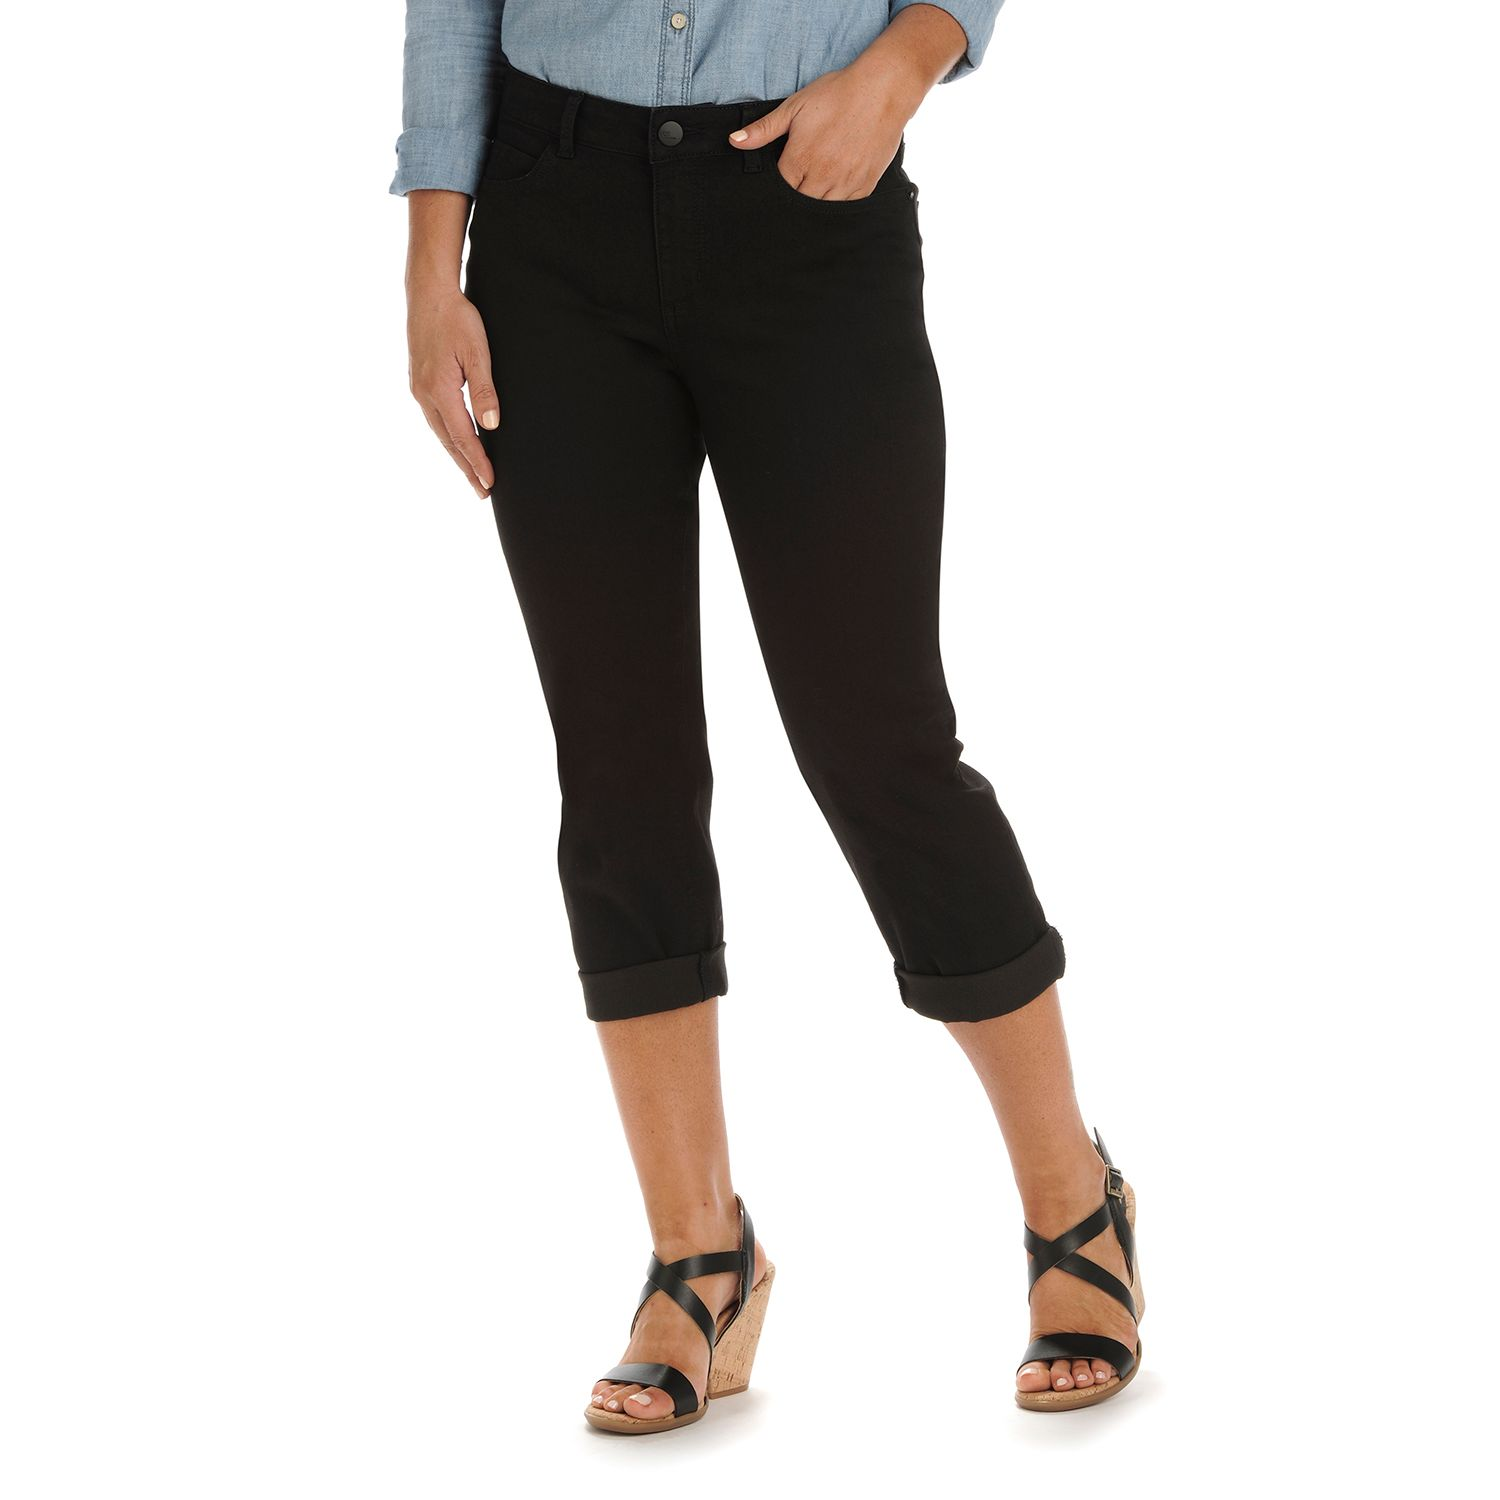 Black Denim Capris - The Else